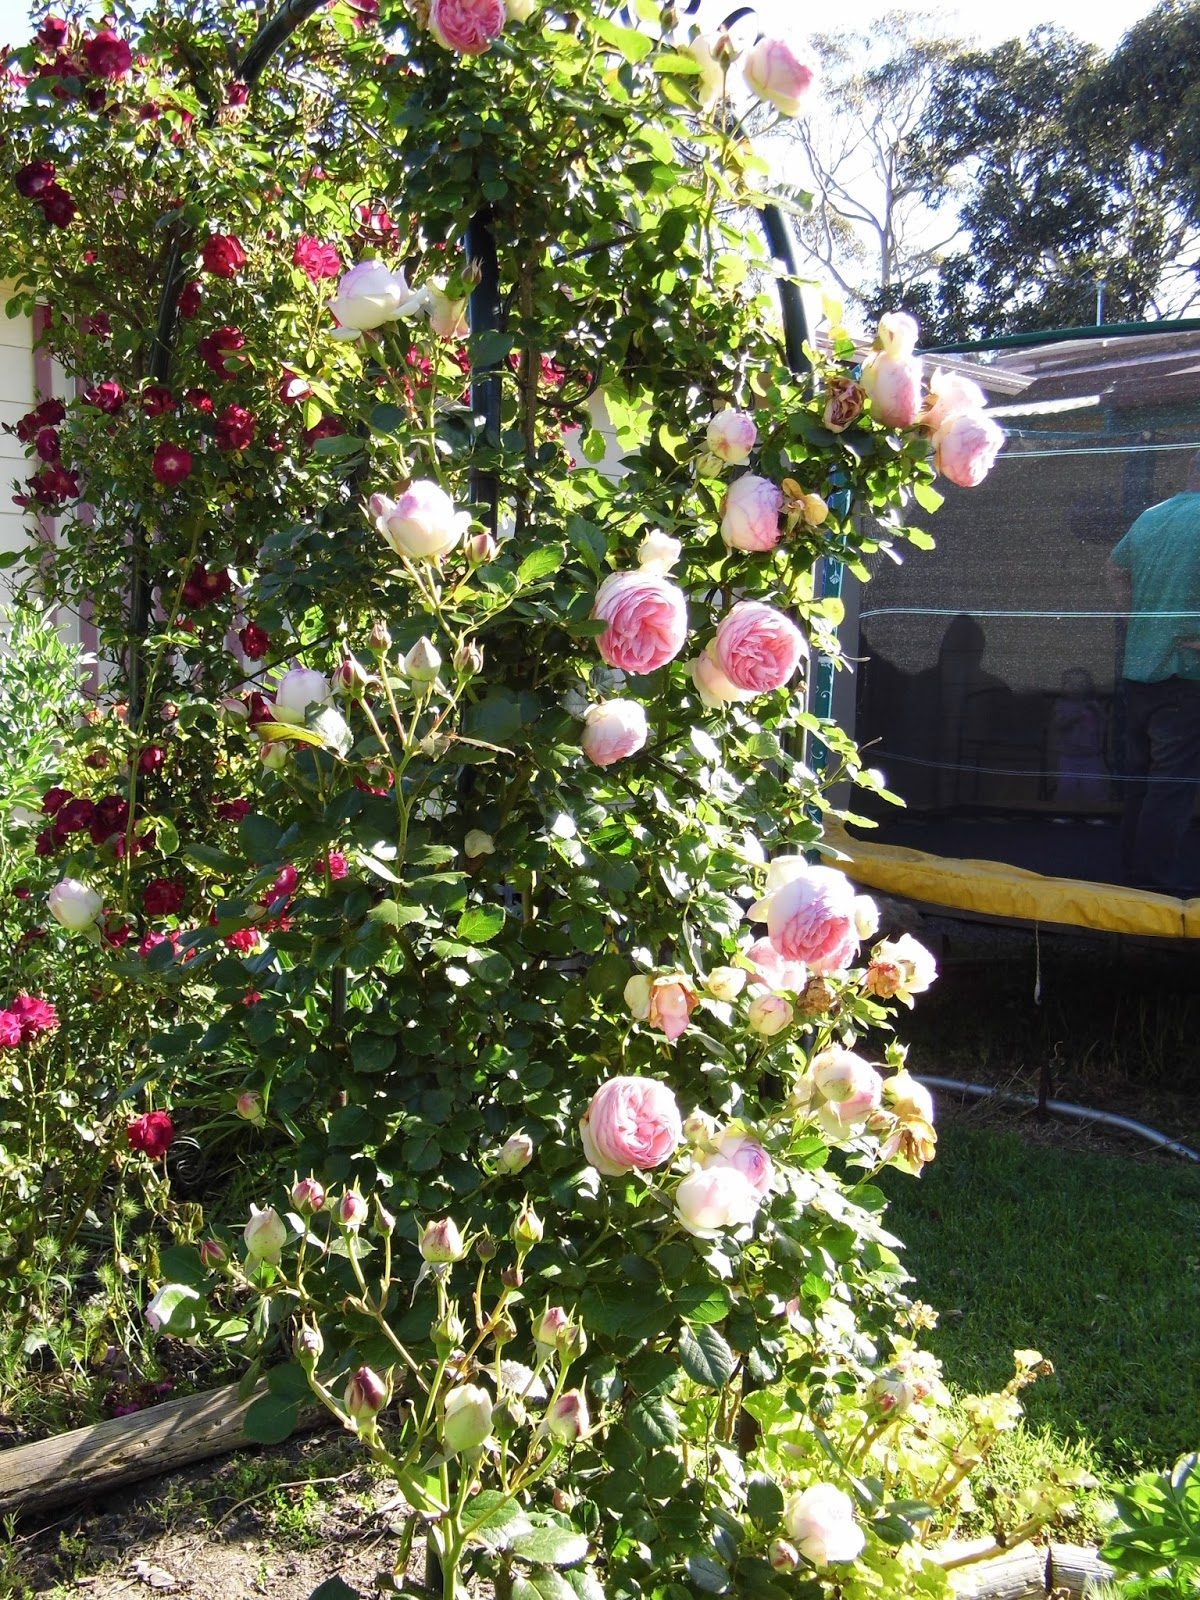 The climbing pierre de ronsard on the left is a gorgeous romantic rose it always comes out in an abundance of beautiful flowers